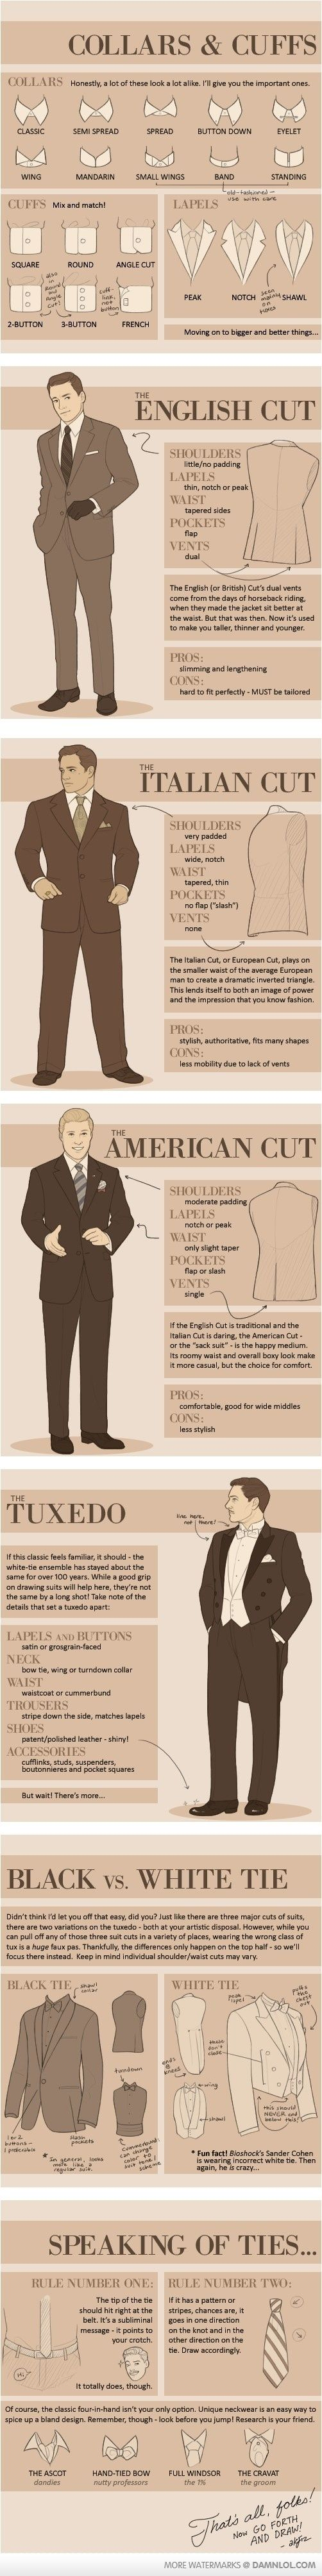 Gentlemen | RJP.com via PinCG.com. How many suits do you need??? Nevermind, this literally has them all I think...